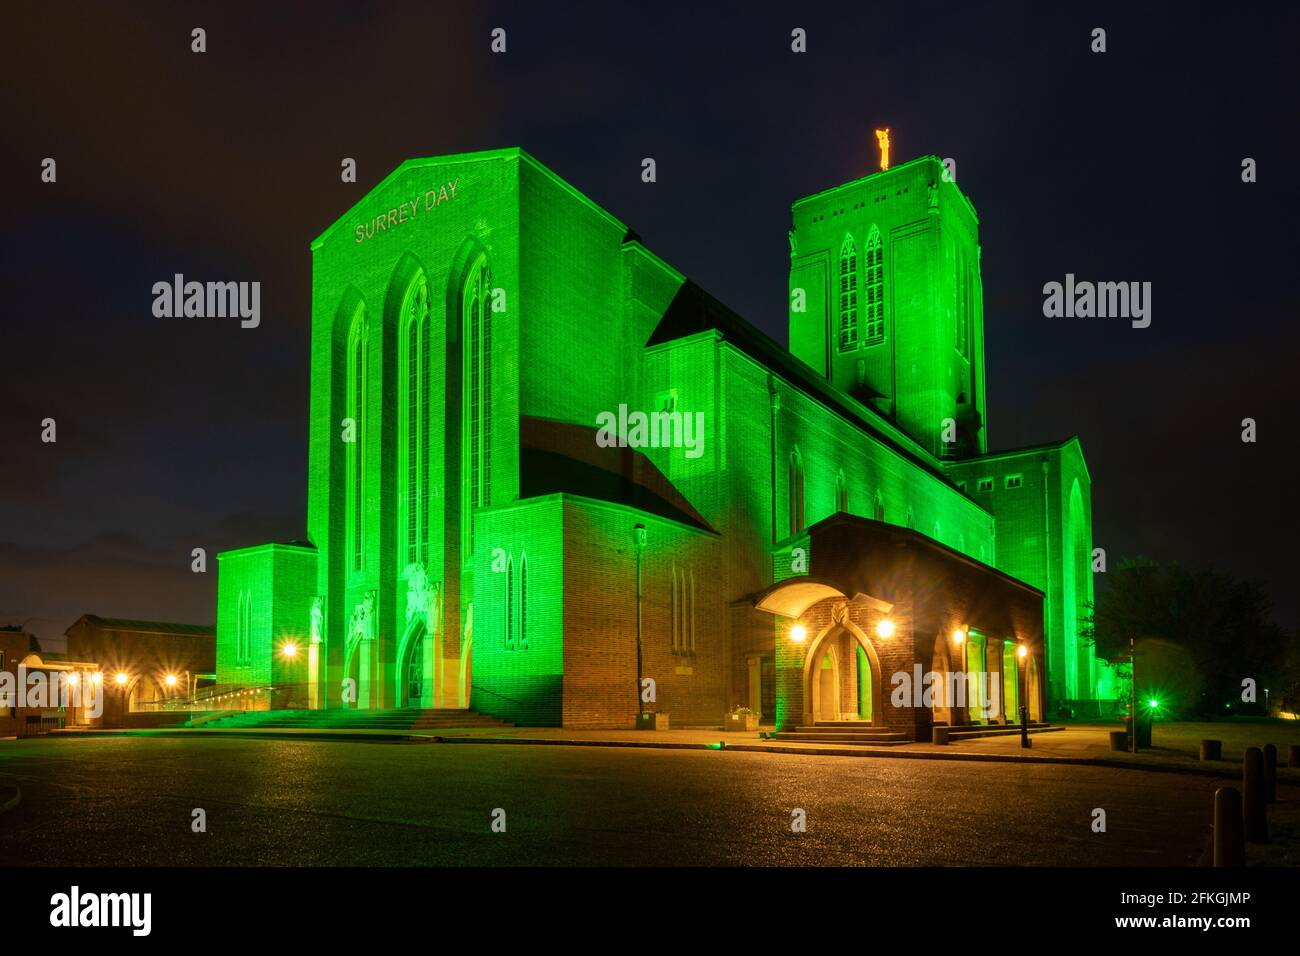 may-1st-2021-today-the-third-annual-surrey-day-was-held-with-various-events-and-celebrations-some-virtual-taking-place-in-the-evening-guildford-cathedral-was-illuminated-in-green-light-in-recognition-of-surrey-being-englands-most-densely-wooded-county-and-the-words-surrey-day-were-projected-onto-the-front-2FKGJMP.jpg